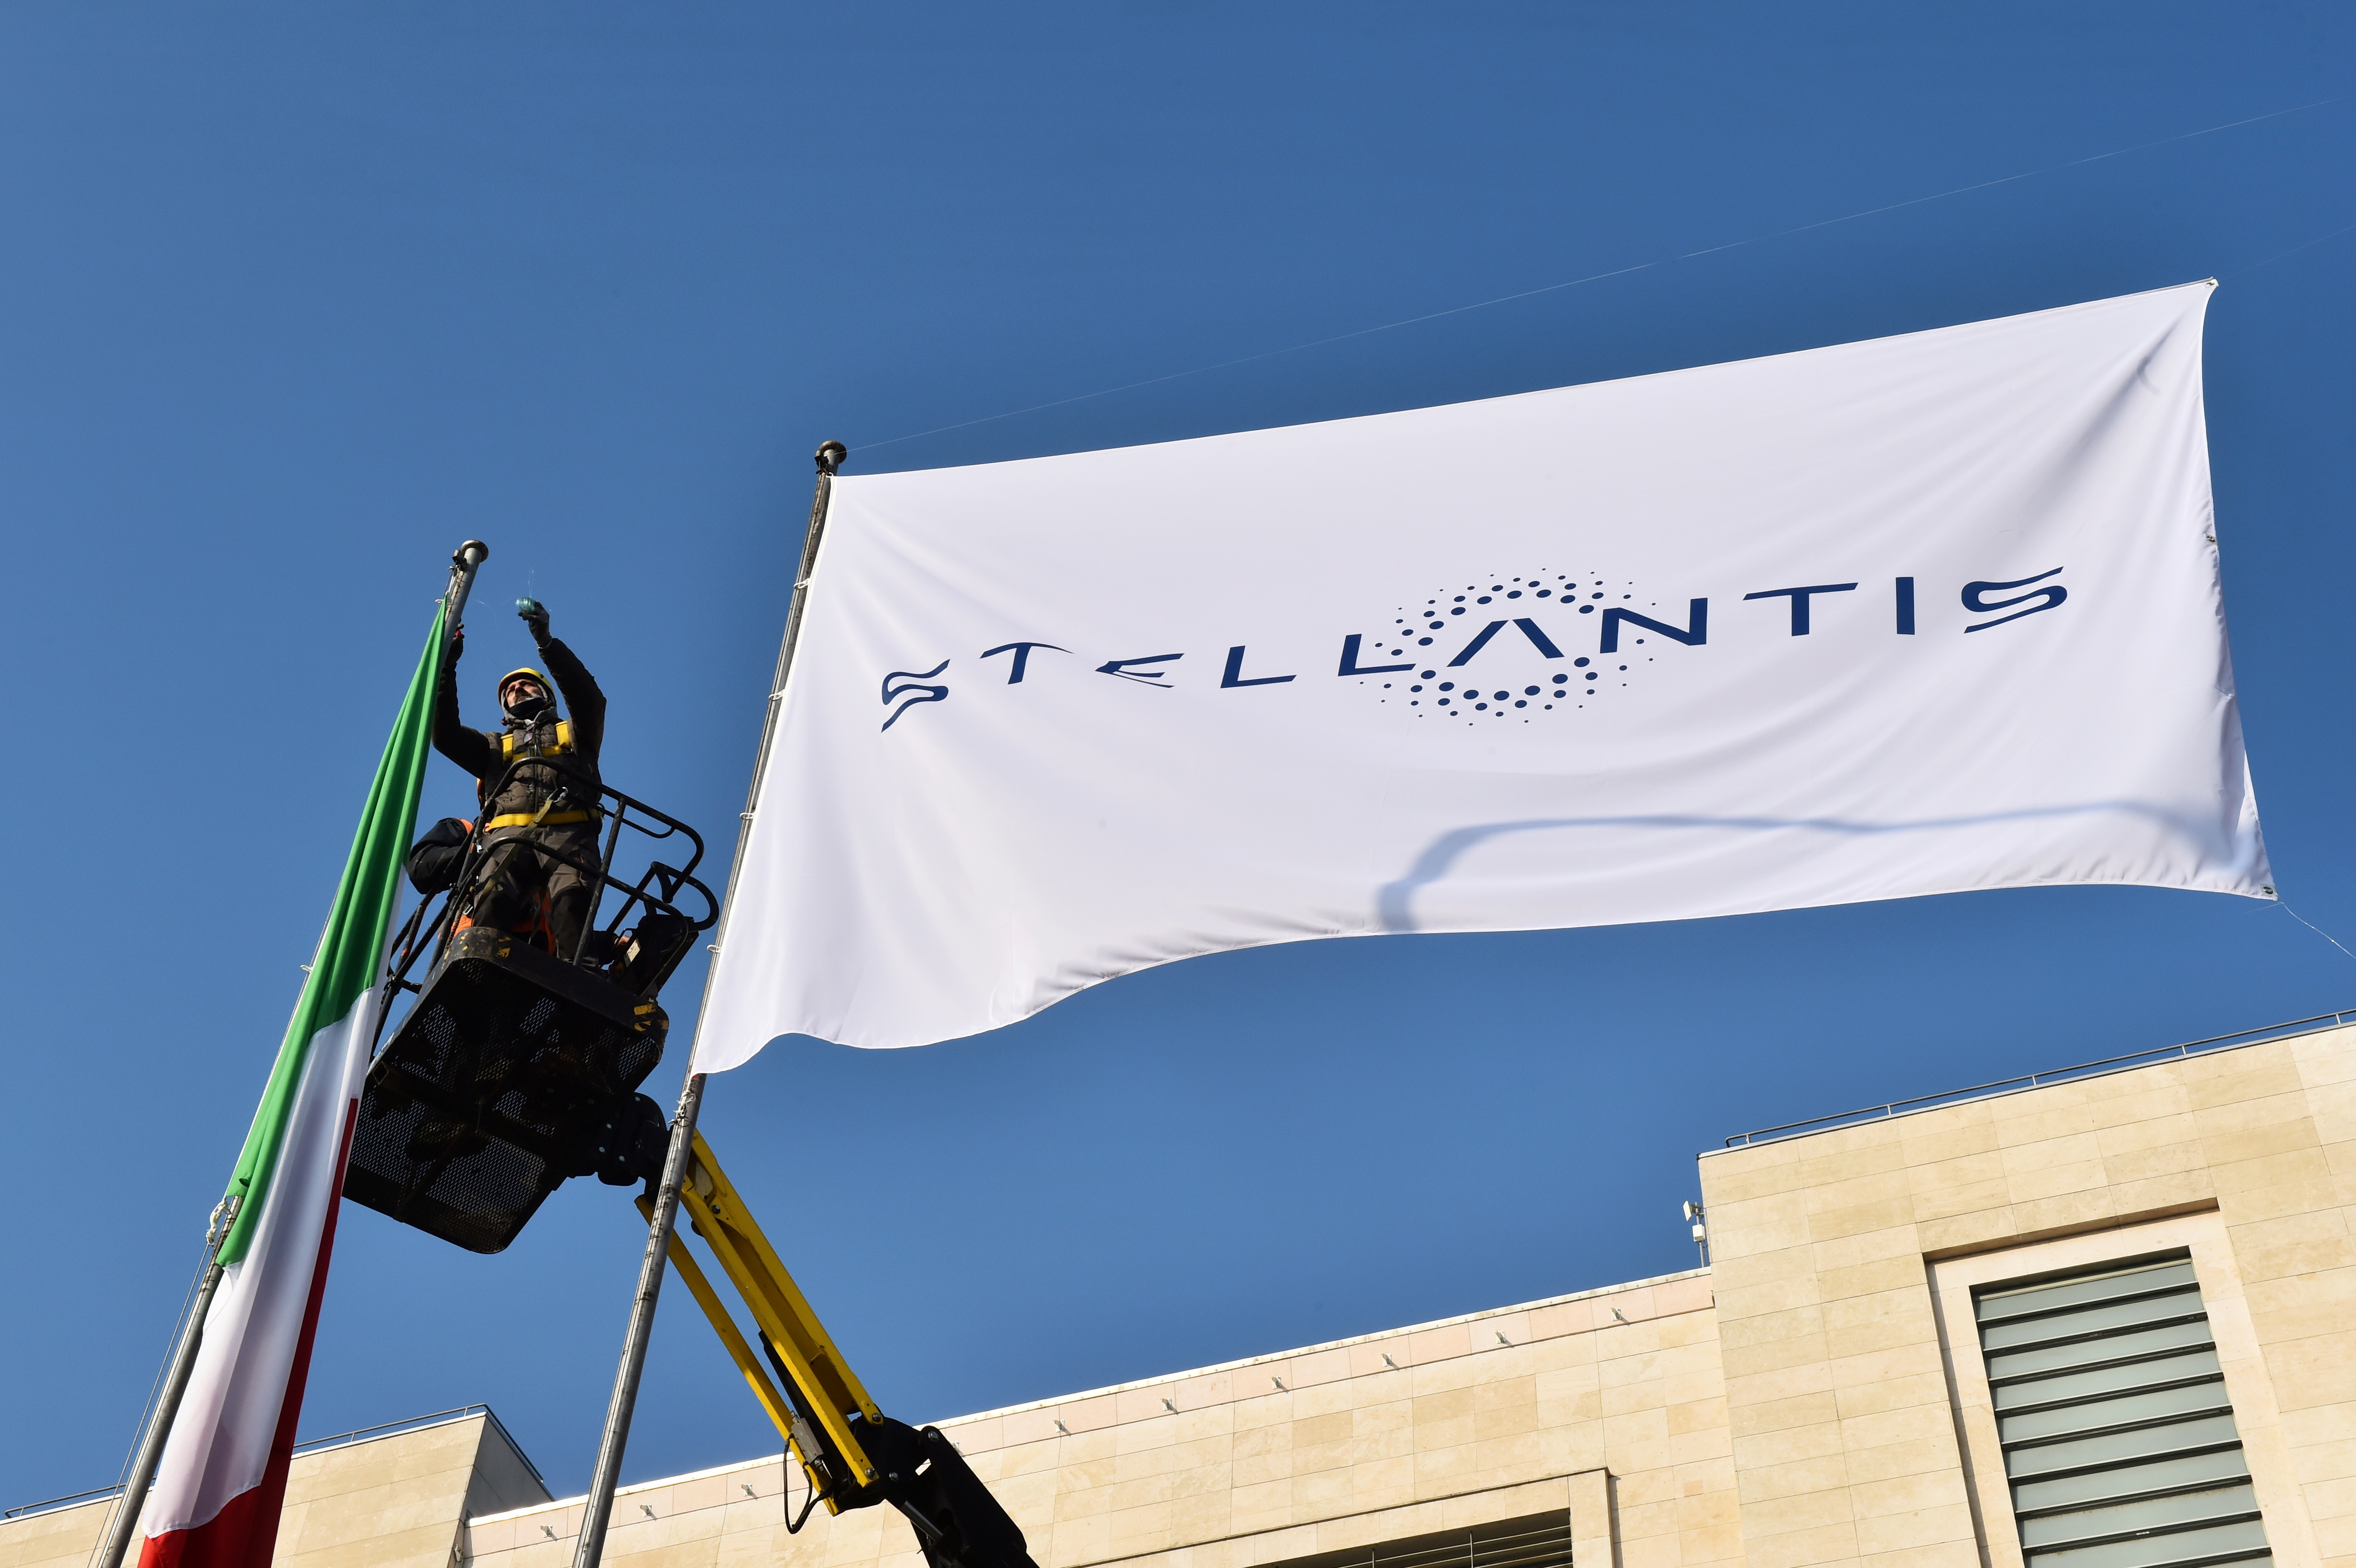 Workers install a flag with the logo of Stellantis, the world's fourth-largest automaker which starts trading in Milan and Paris after Fiat Chrysler and Peugeot maker PSA finalised their merger, at the main entrance of FCA Mirafiori plant in Turin, Italy, January 18, 2021. REUTERS/Massimo Pinca/File Photo